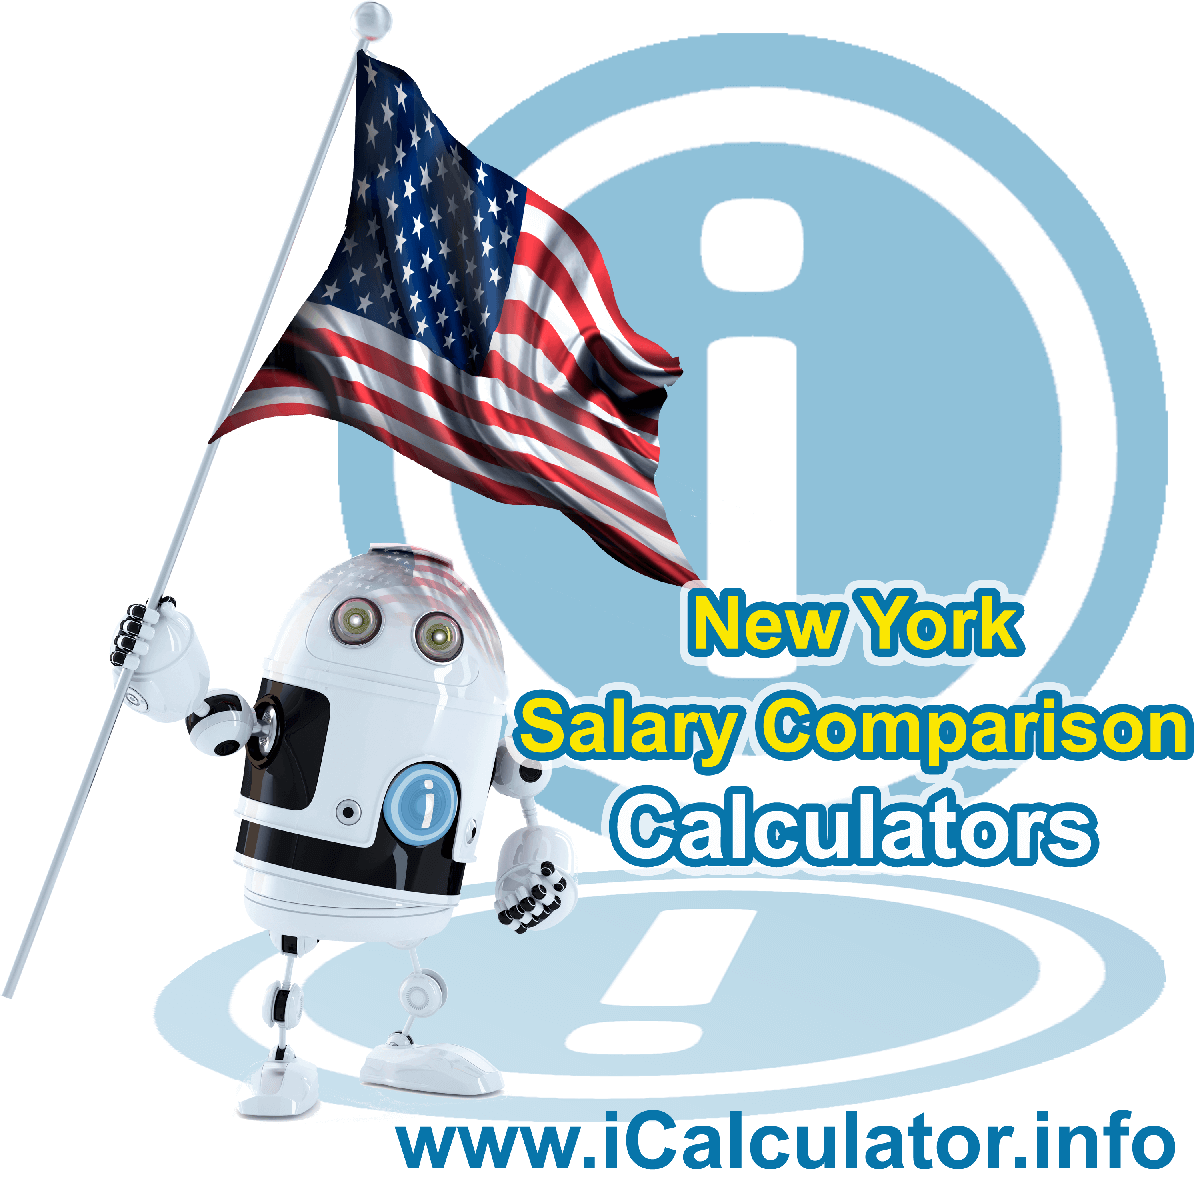 New York Salary Comparison Calculator 2021 | iCalculator™ | The New York Salary Comparison Calculator allows you to quickly calculate and compare upto 6 salaries in New York or between other states for the 2021 tax year and historical tax years. Its an excellent tool for jobseekers, pay raise comparison and comparison of salaries between different US States